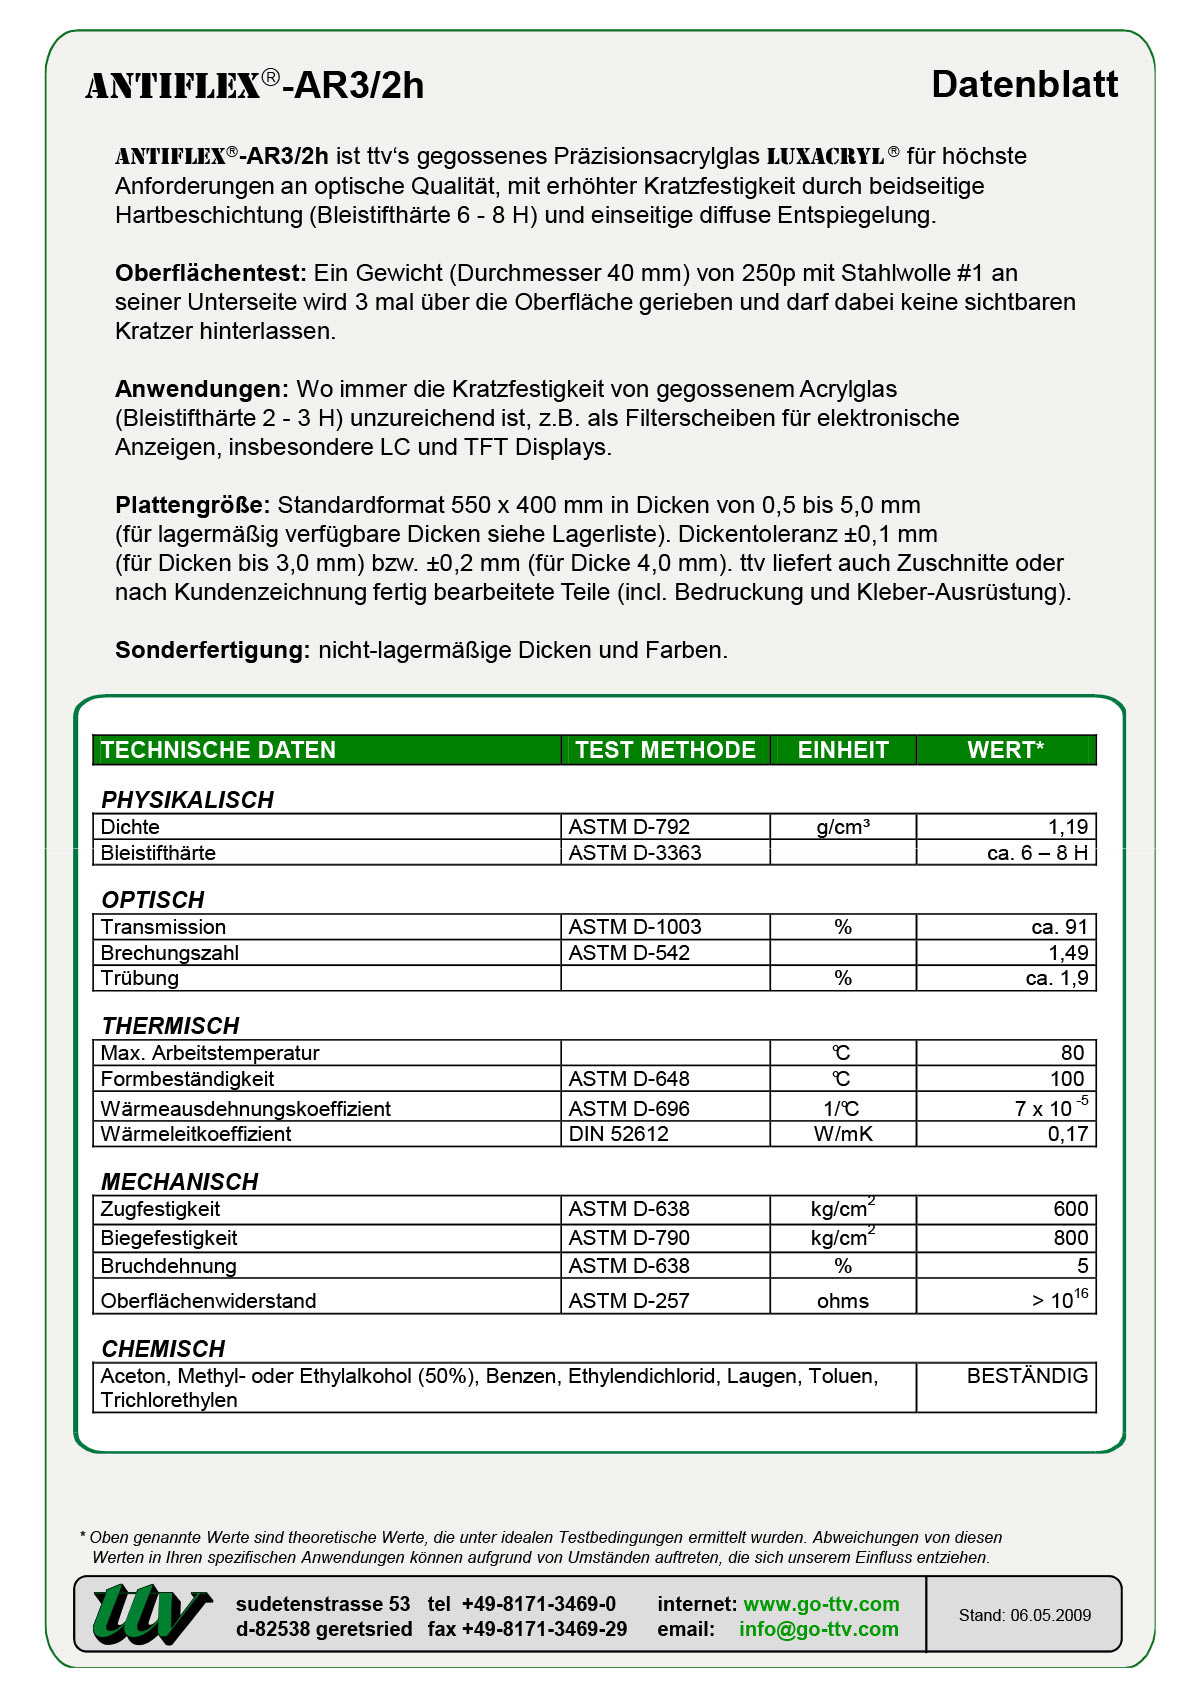 Antiflex-AR3/2h Datenblatt